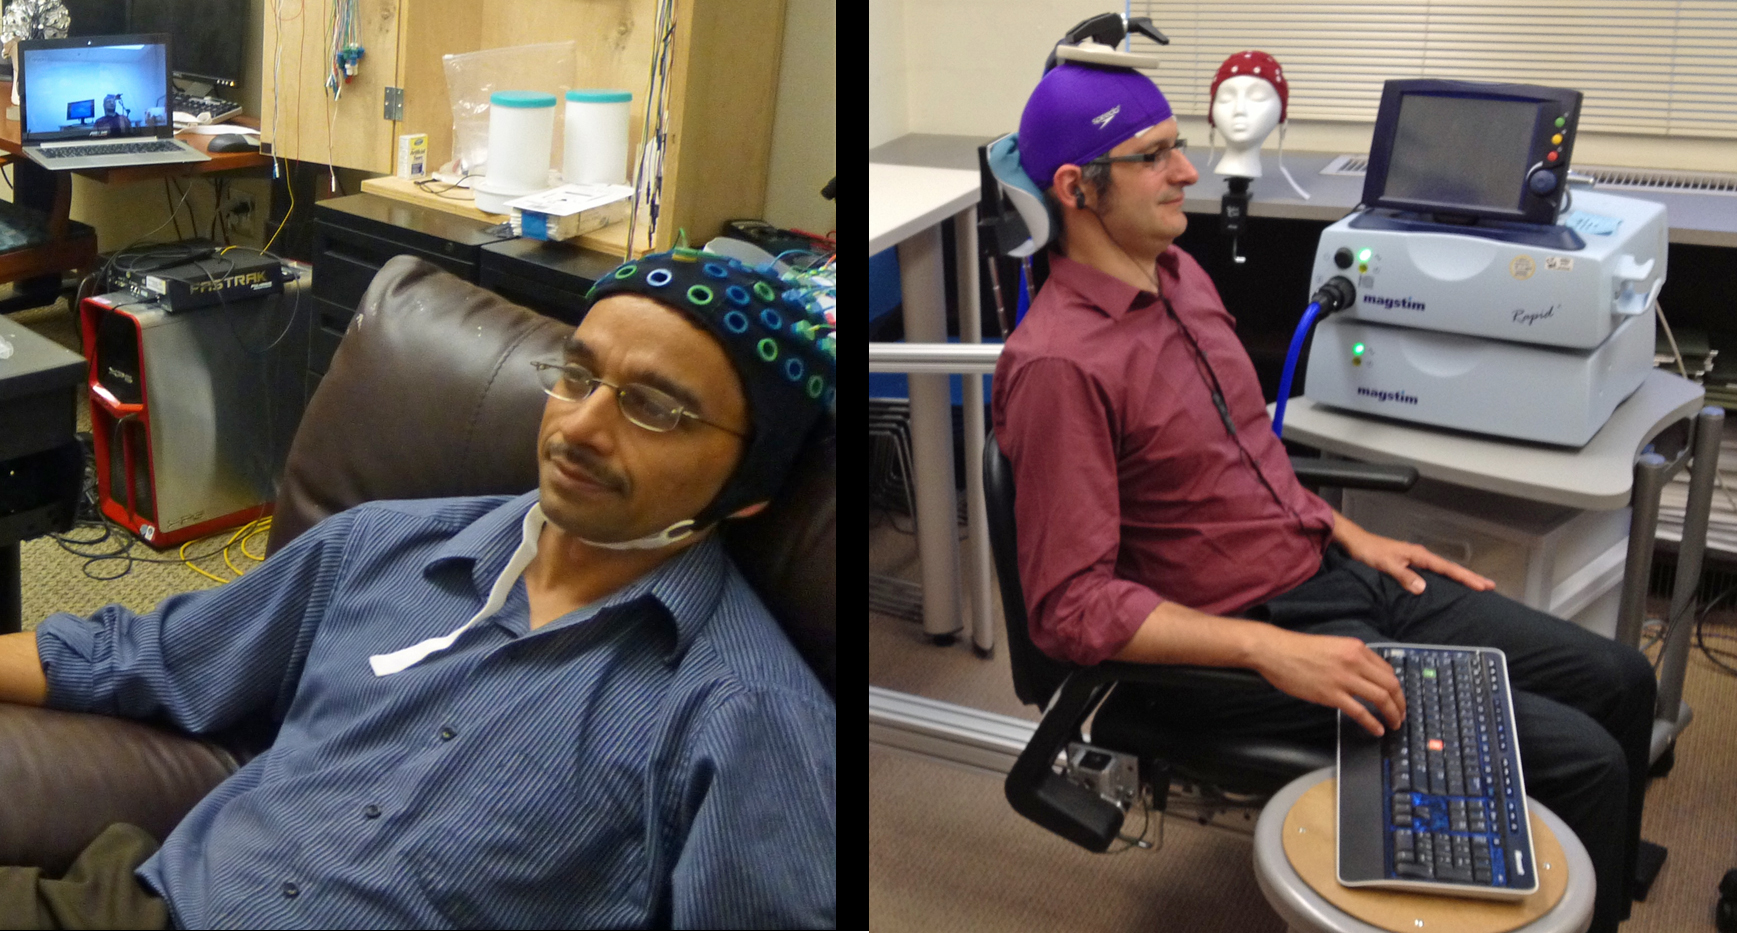 Researcher controls colleague's motions in first human brain-to-brain interface (w/ Video)